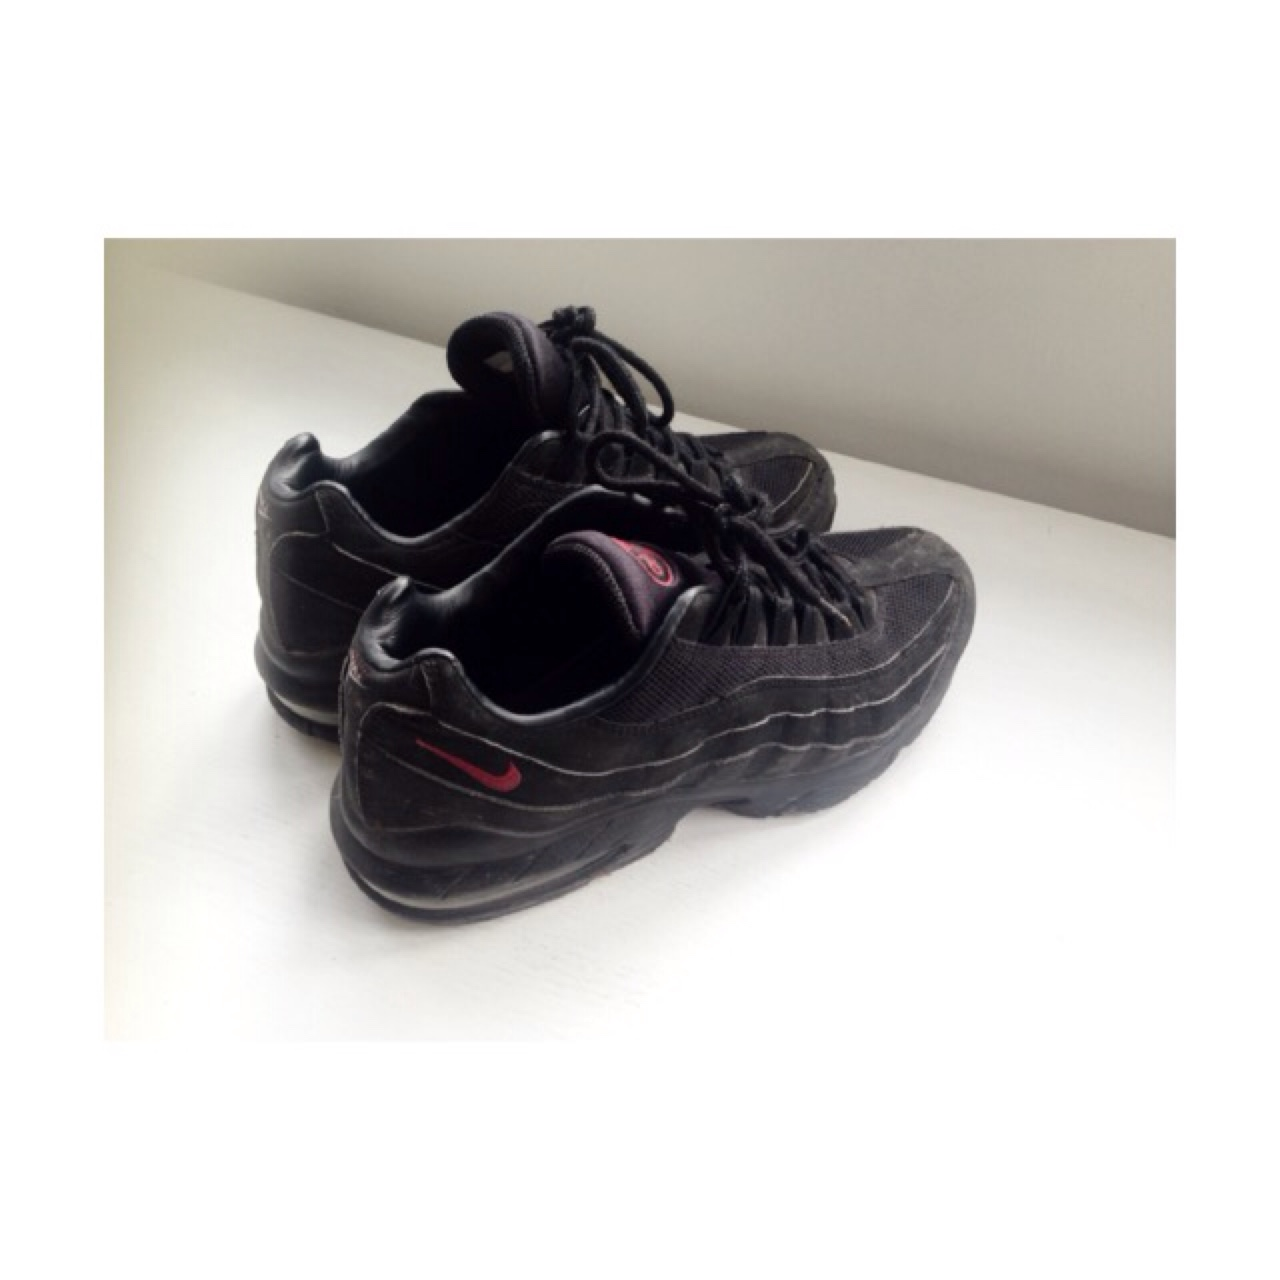 Air Max 95 All Black with Red Tick and logo detail Depop